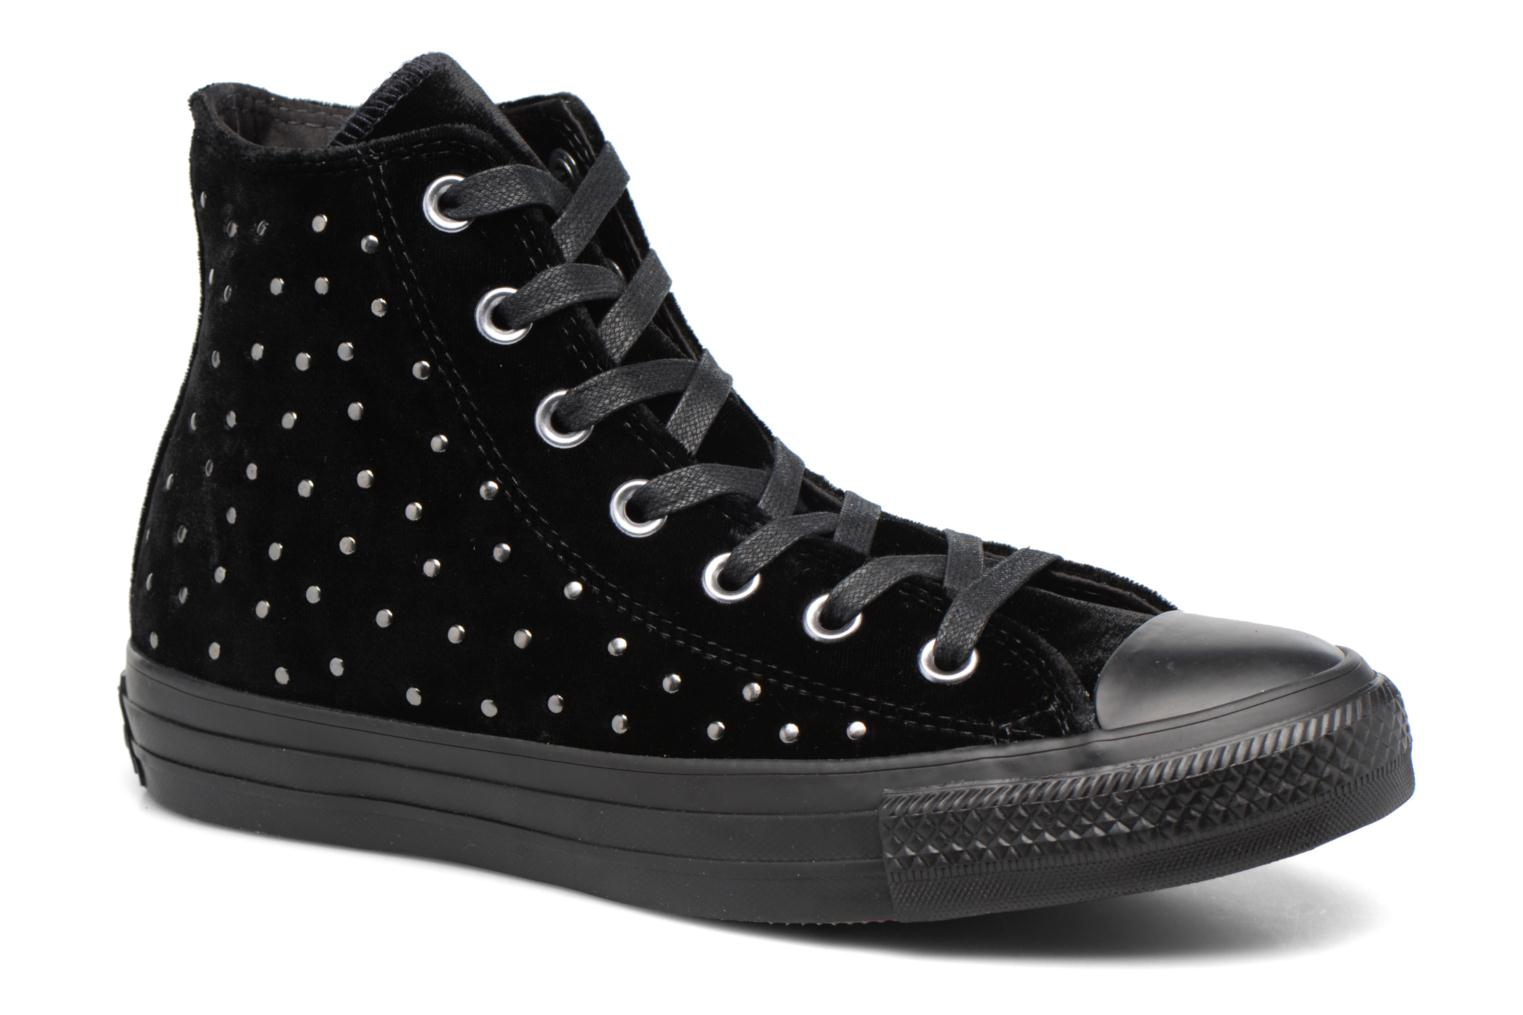 Marques Chaussure femme Converse femme Chuck Taylor All Star Velvet Studs Hi Eclipse/Black/Turtledove